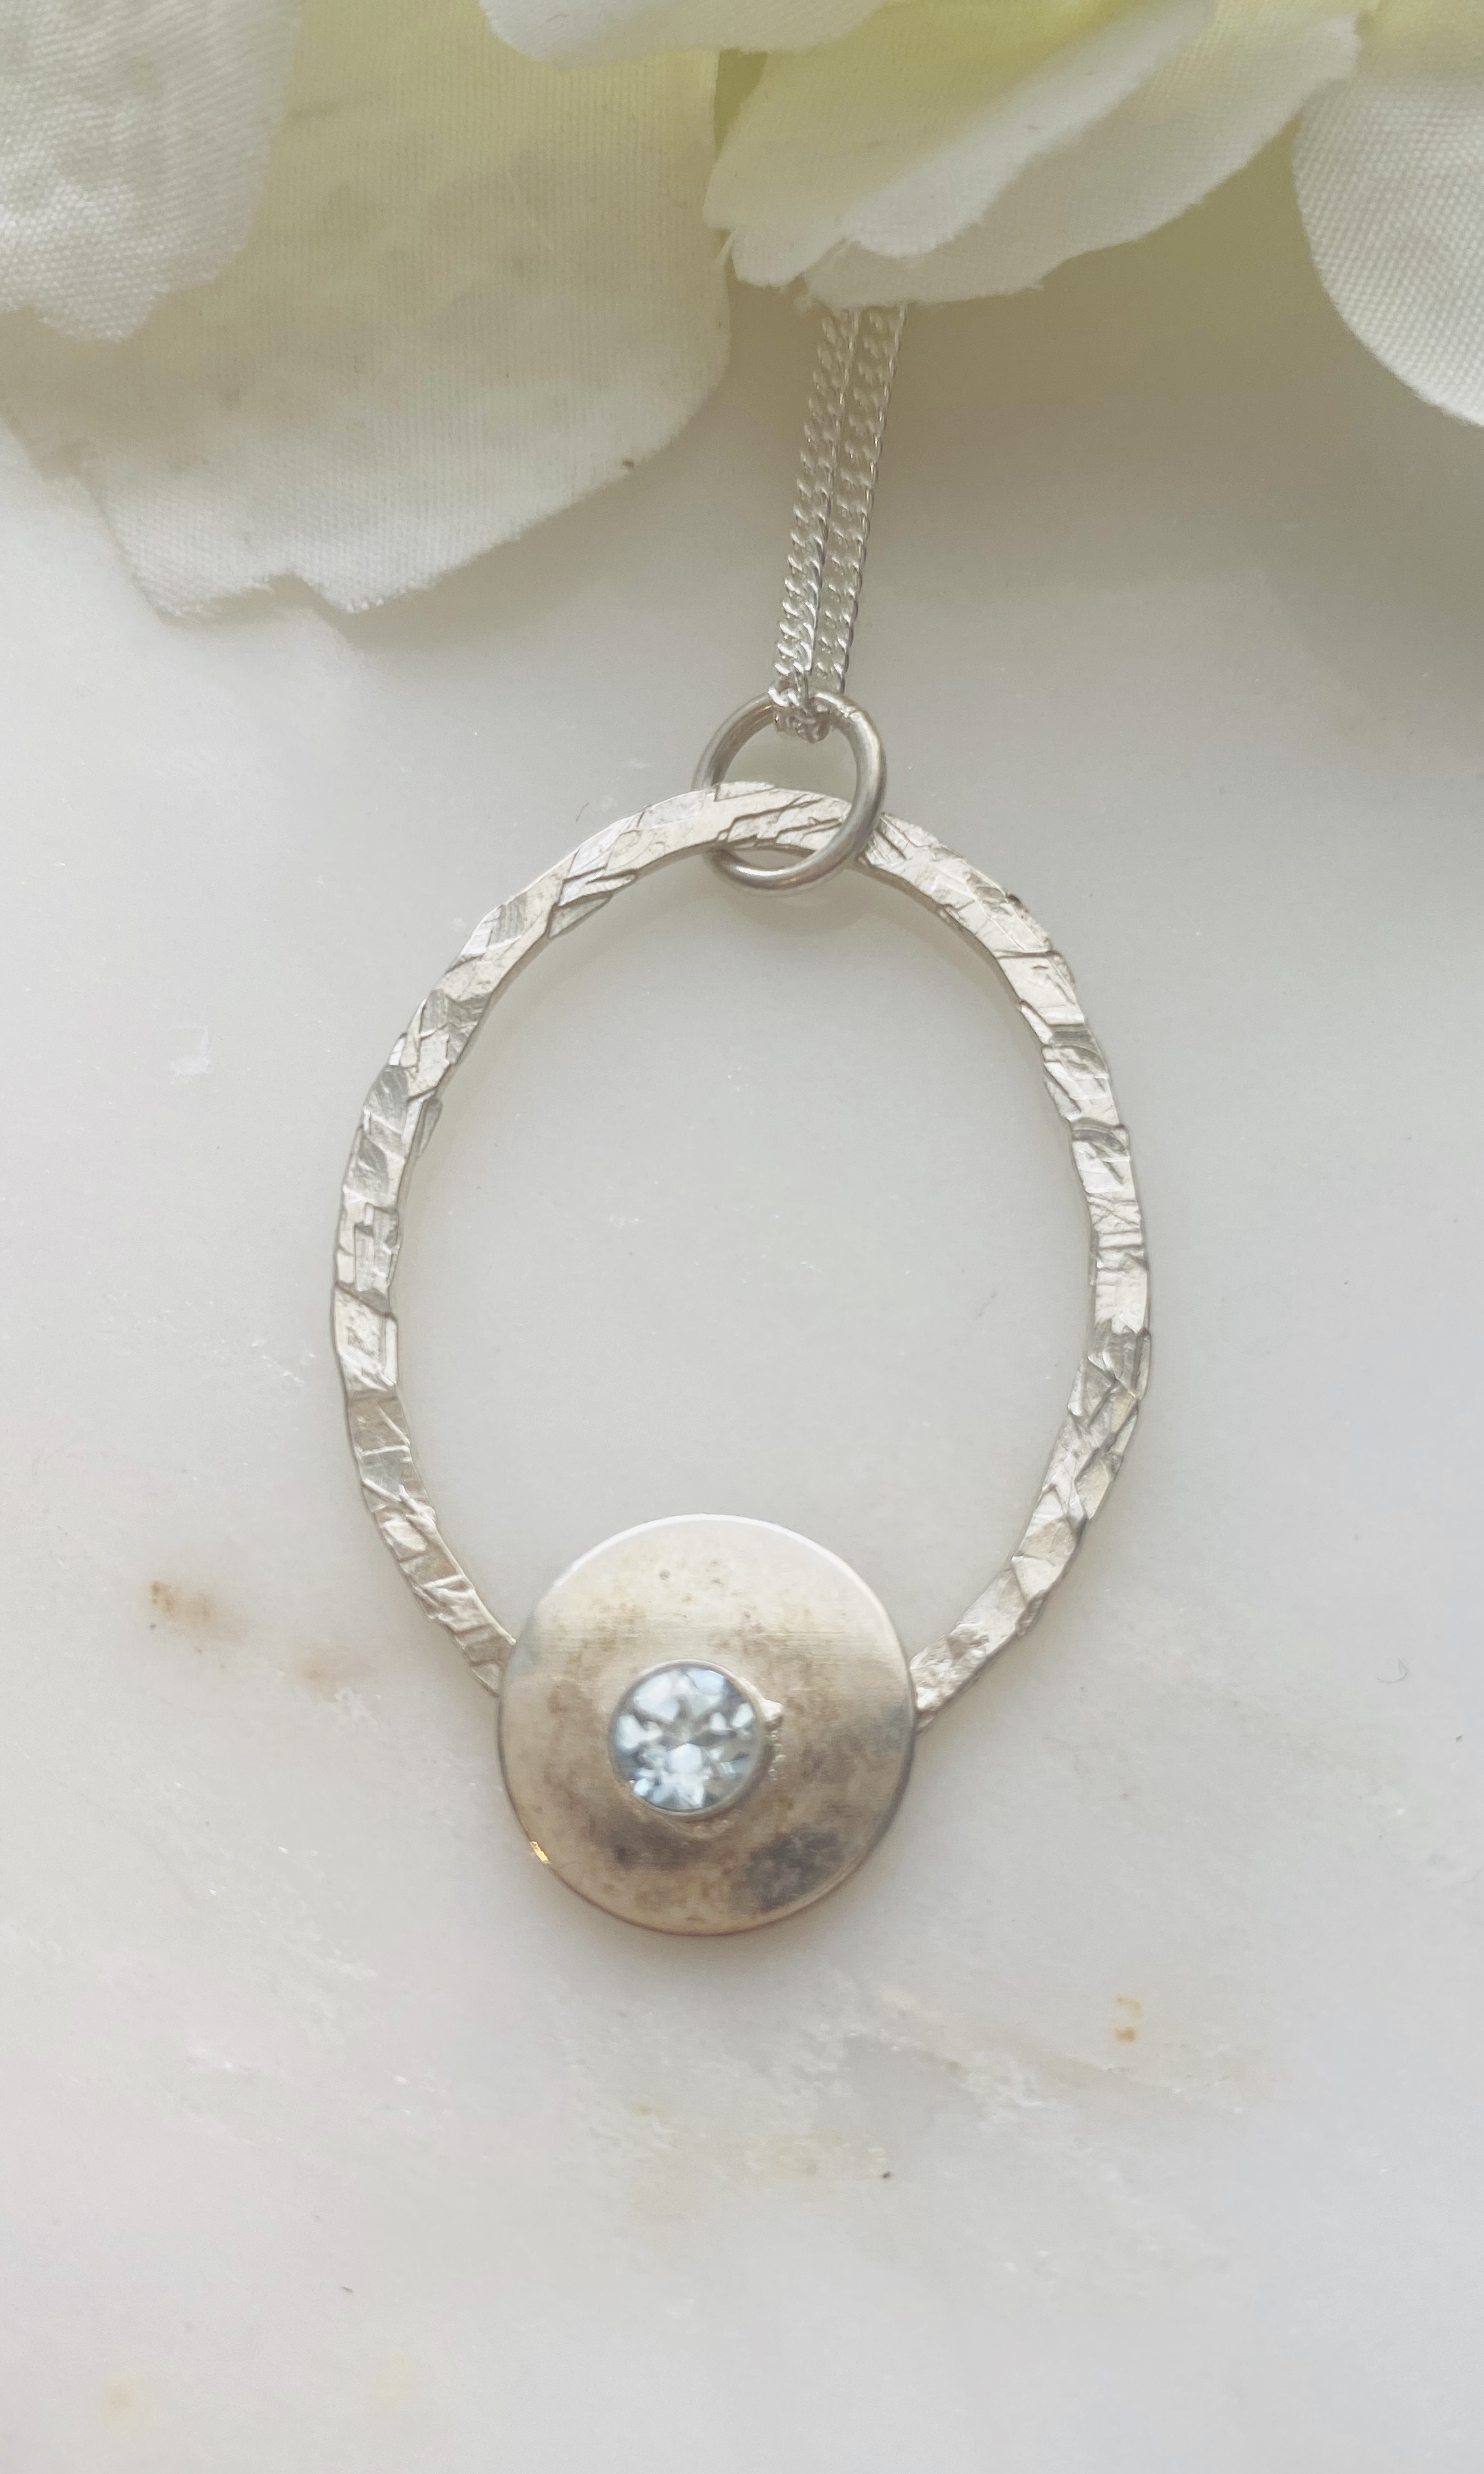 Topaz oval hammered pendant